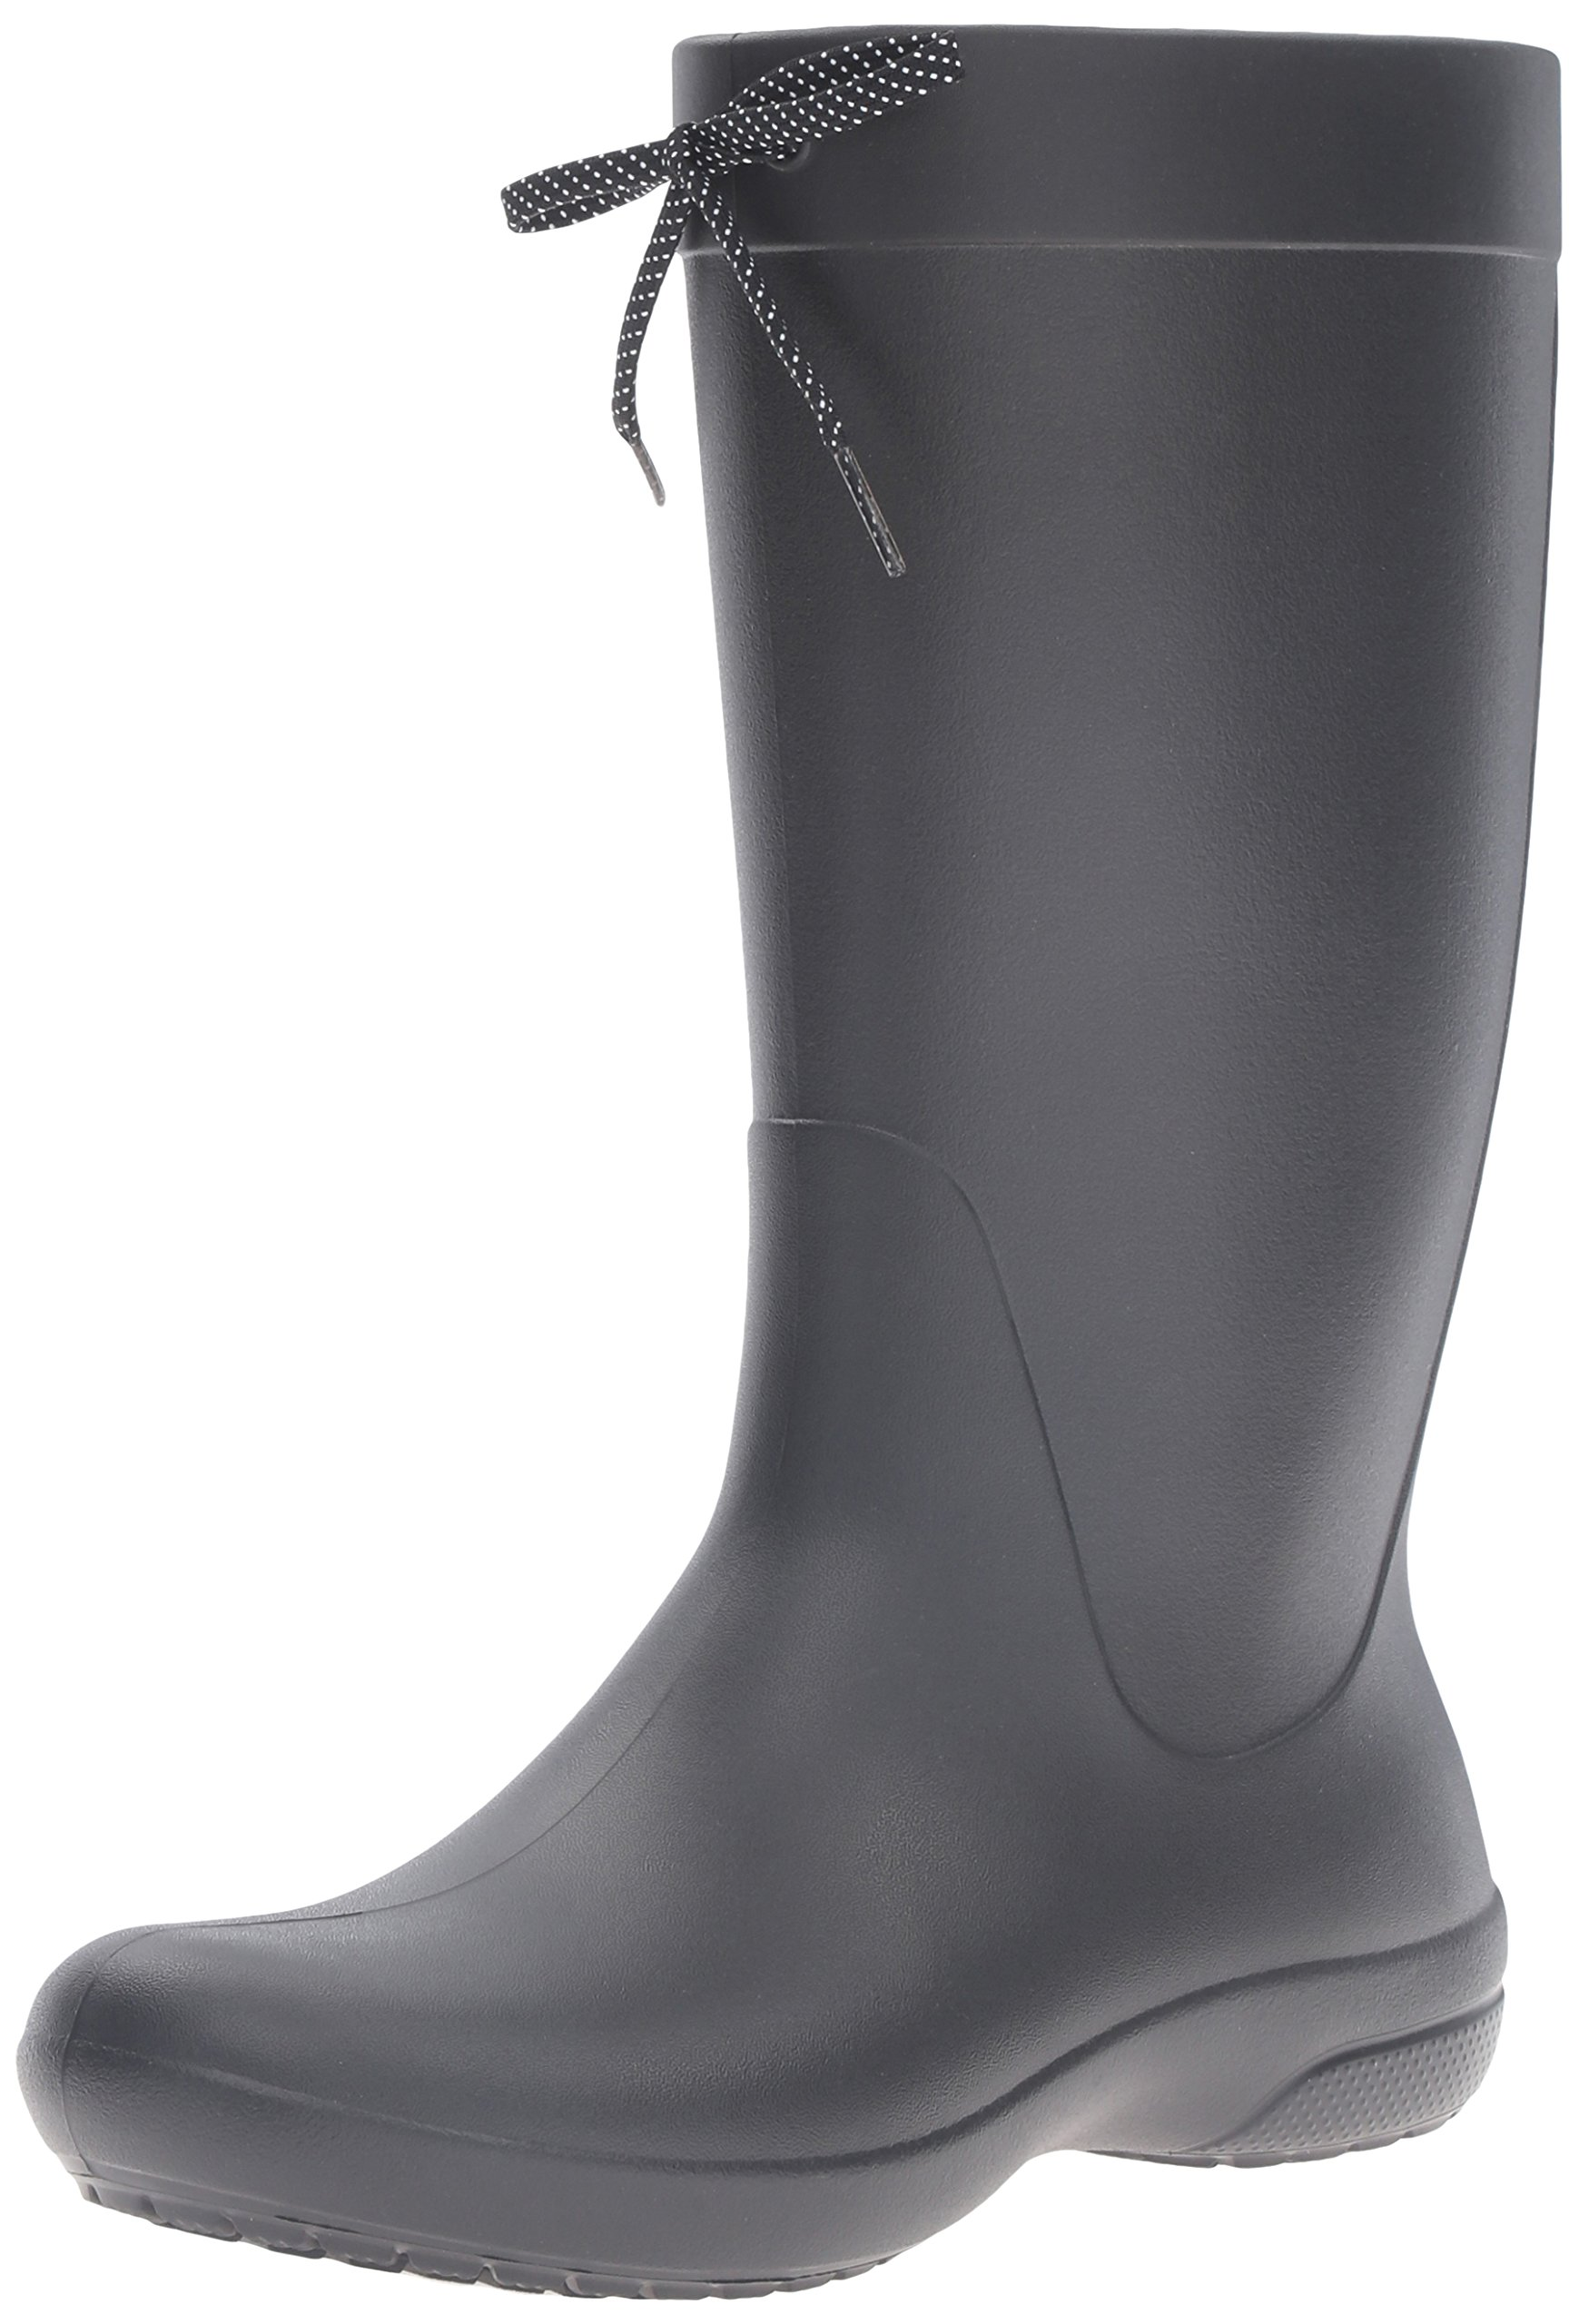 Crocs Women's Freesail Rain Boot, Black, 10 M US